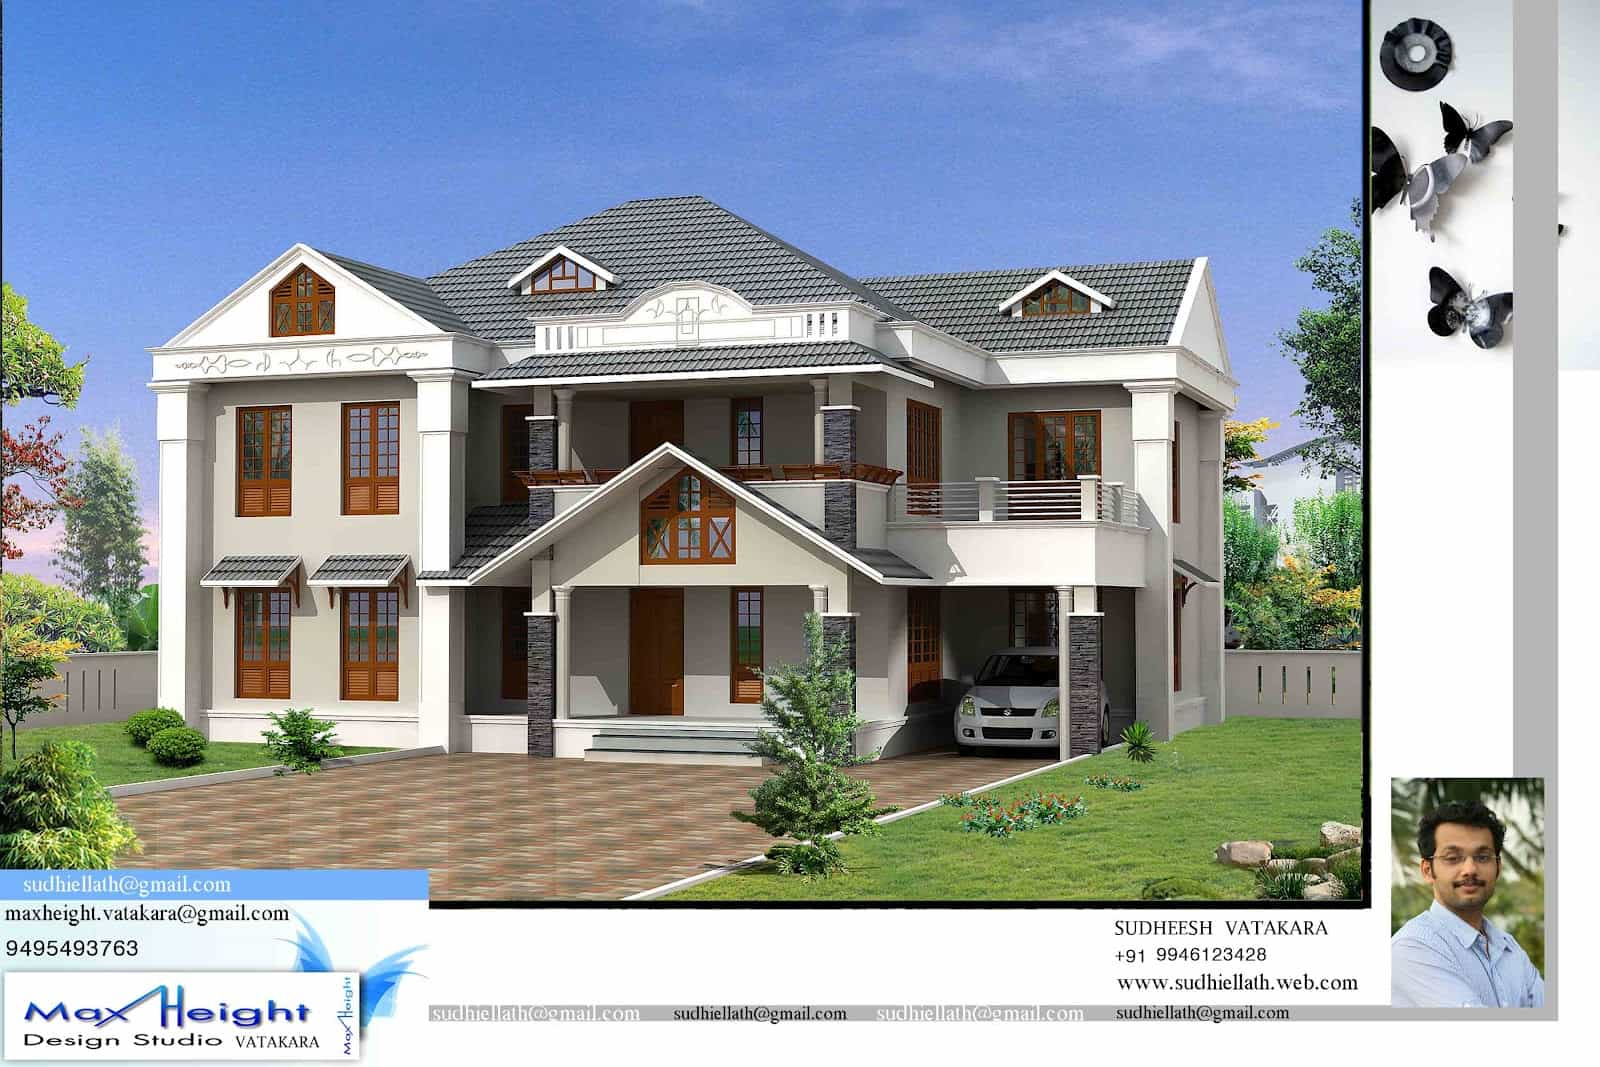 Kerala house model latest kerala style home design Model plans for house